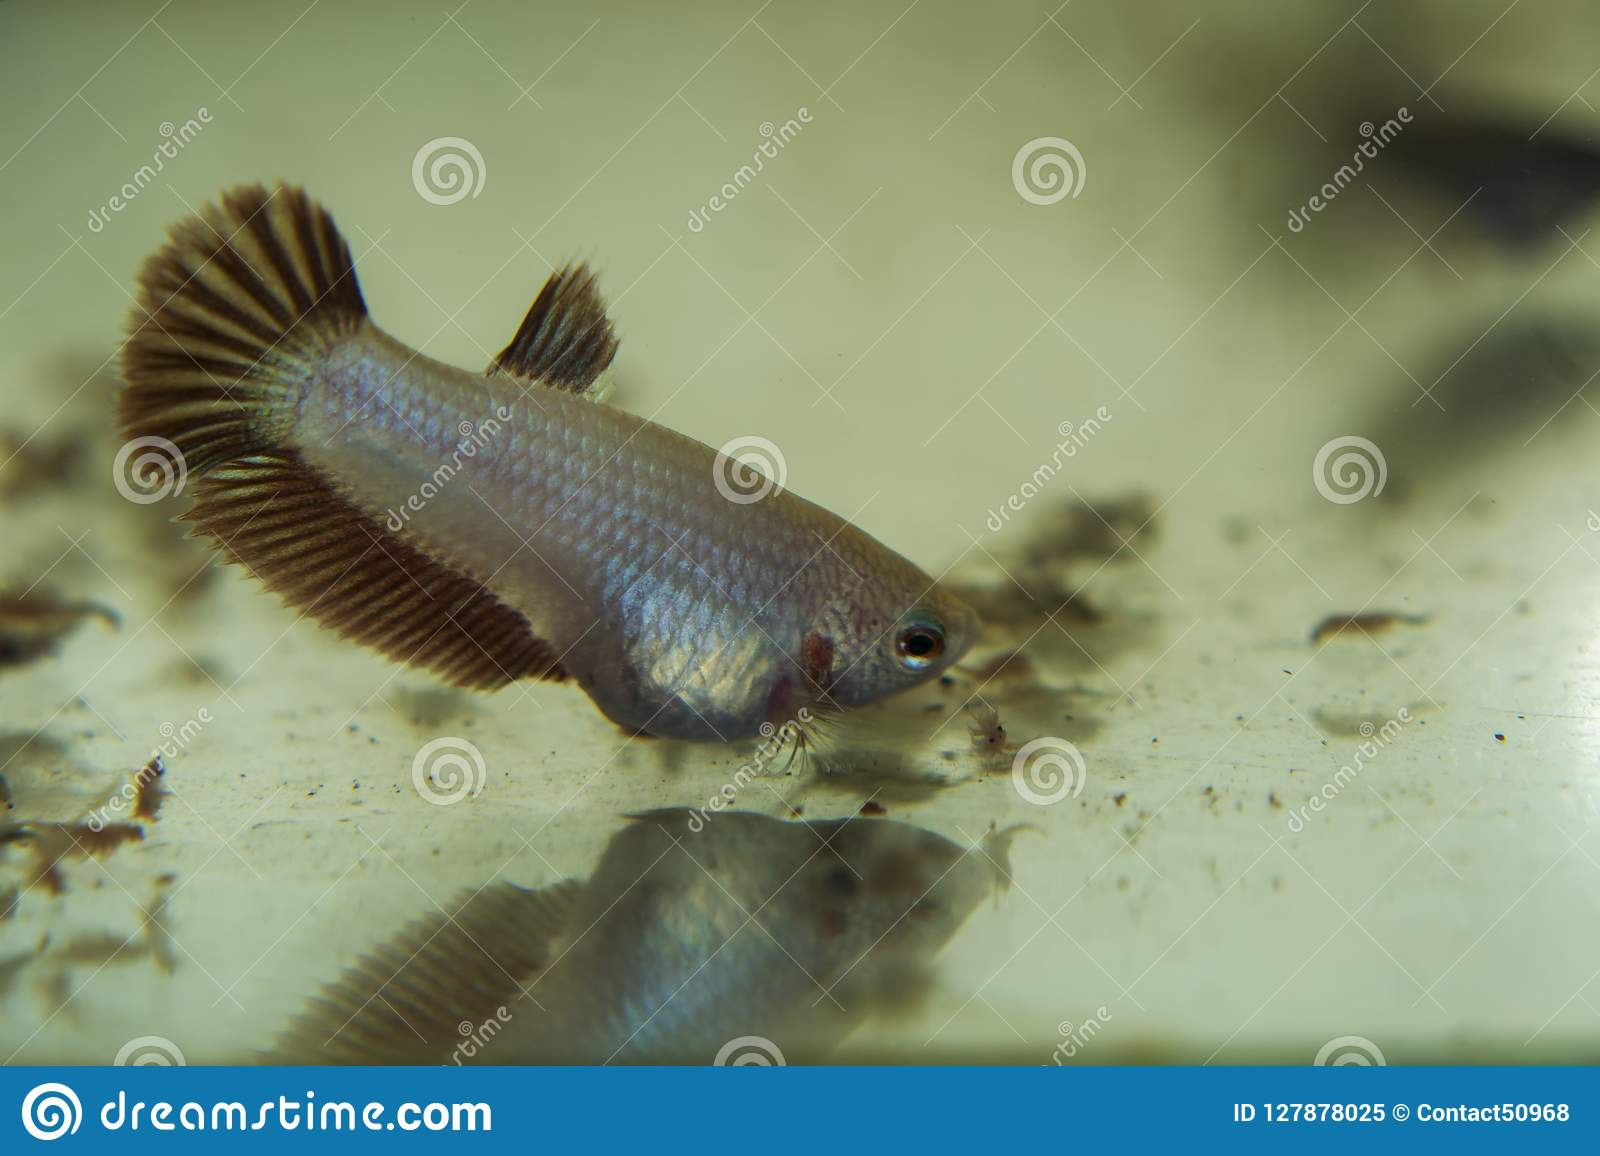 Information on Caring for Your Siamese Fighting Fish